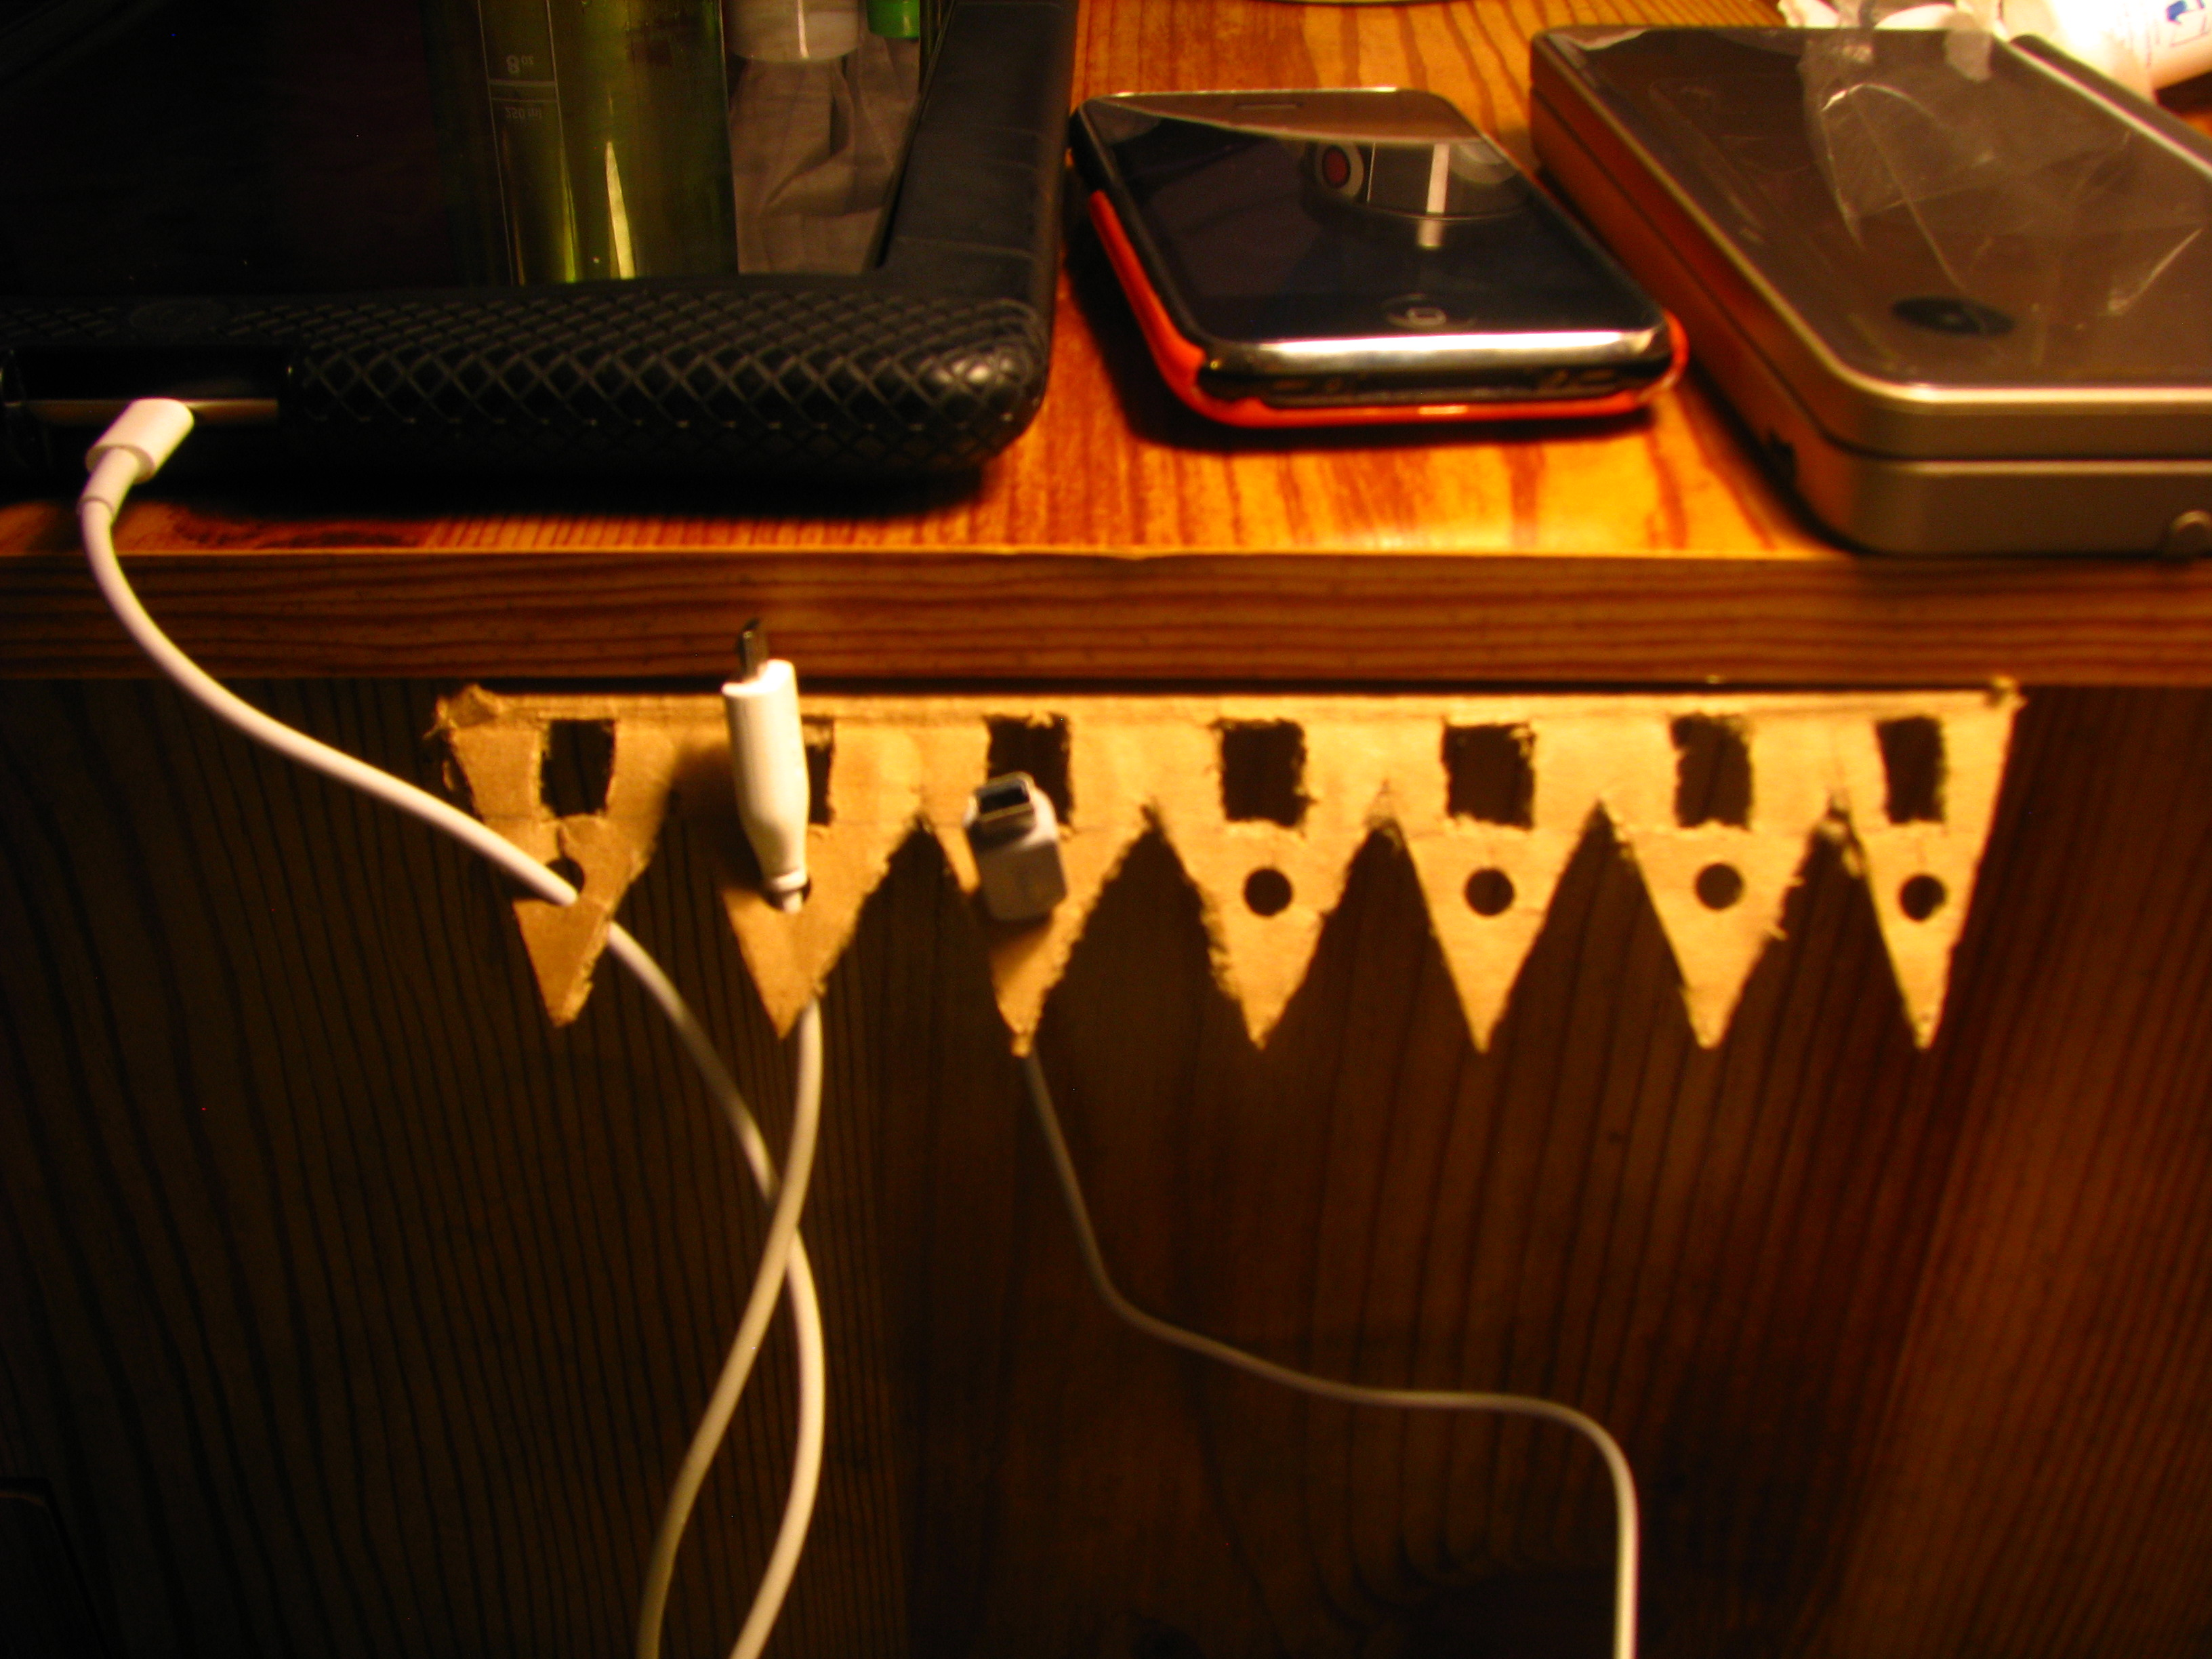 Picture of Bedside Table Cord Organizer